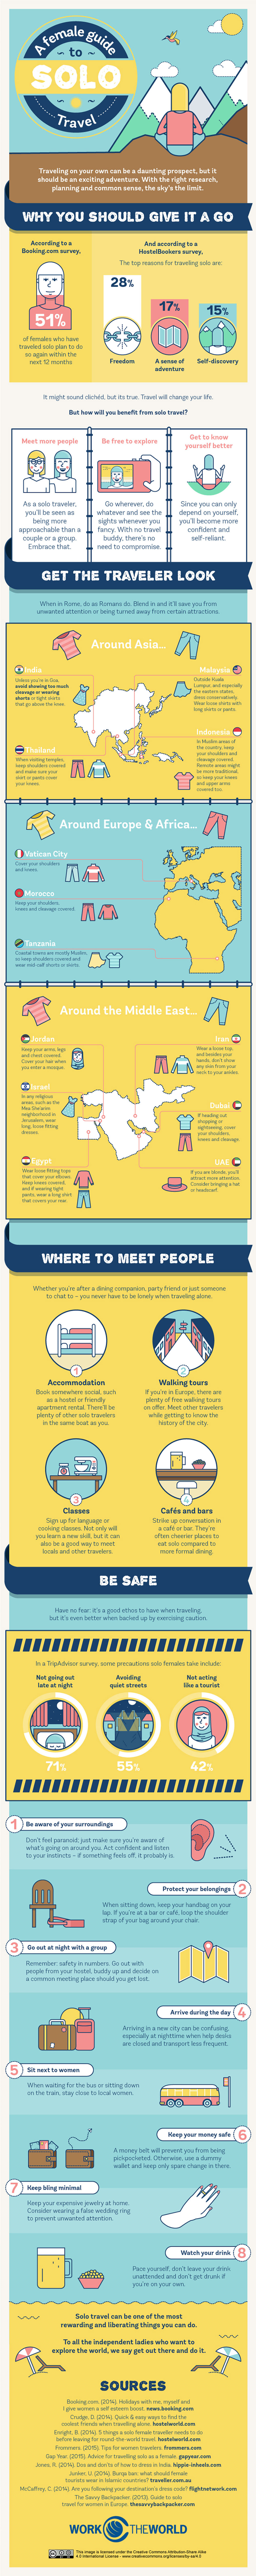 Female Solo Travel: The Ultimate Journey of Self-Discovery - Infographic